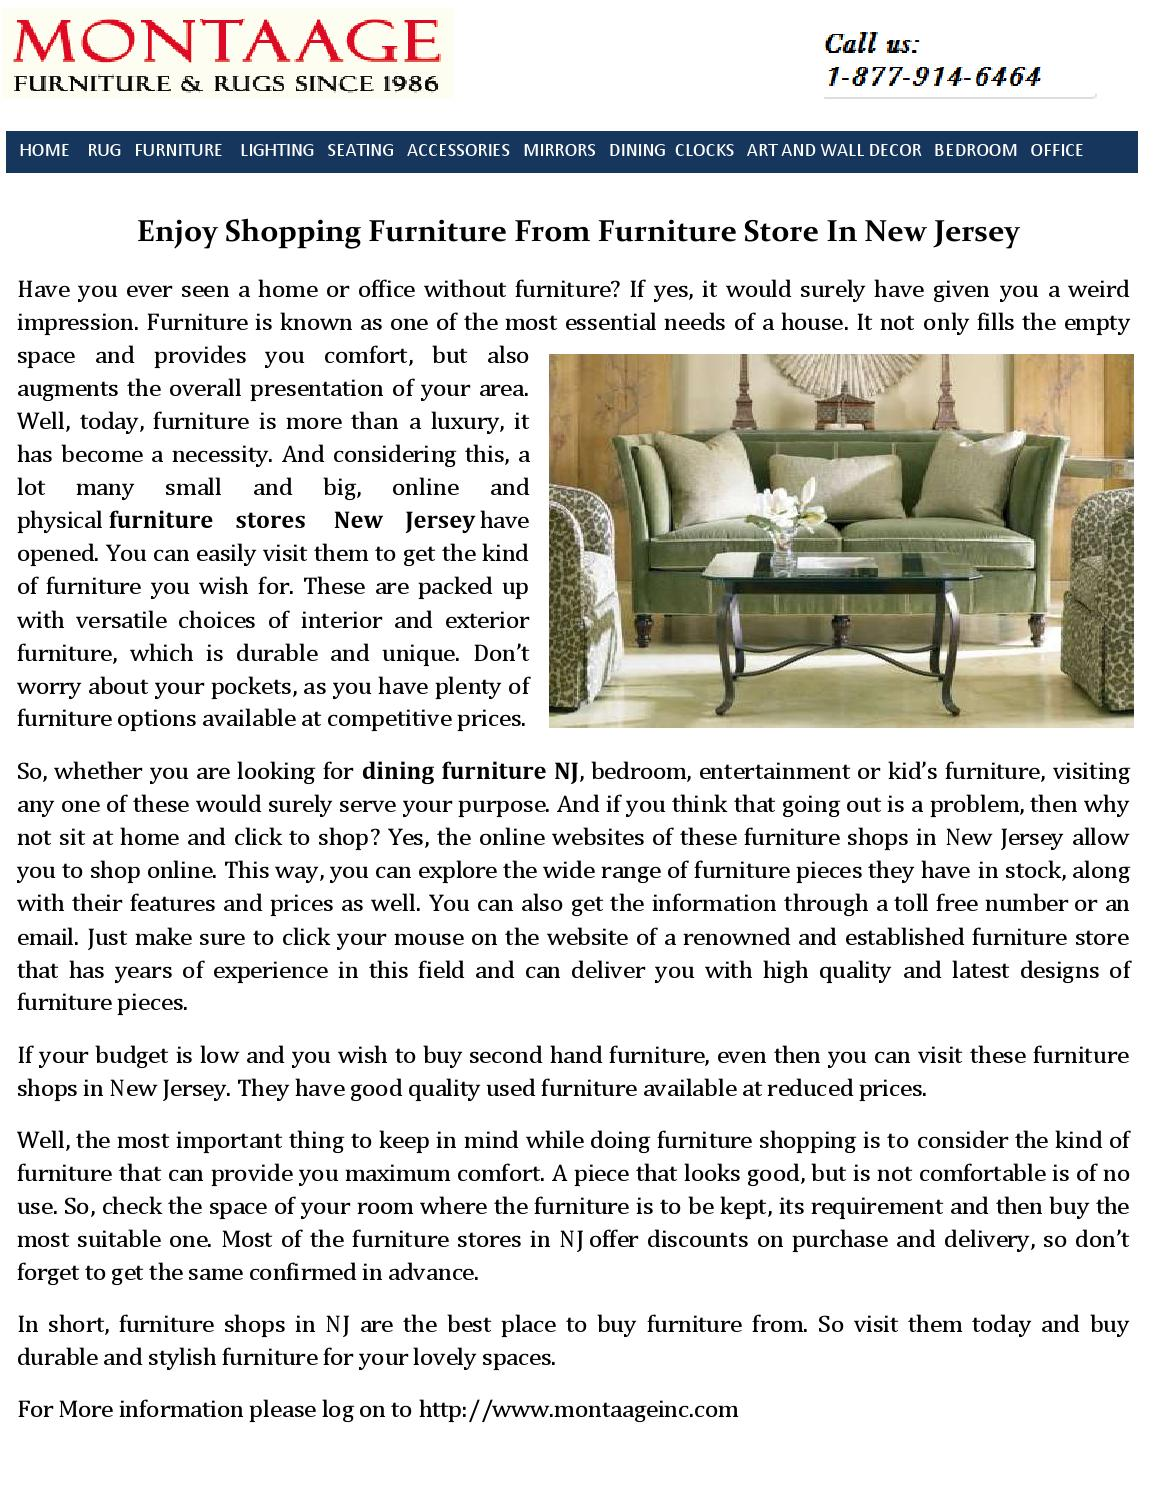 Furniture Store New Jersey By Montaage   Issuu